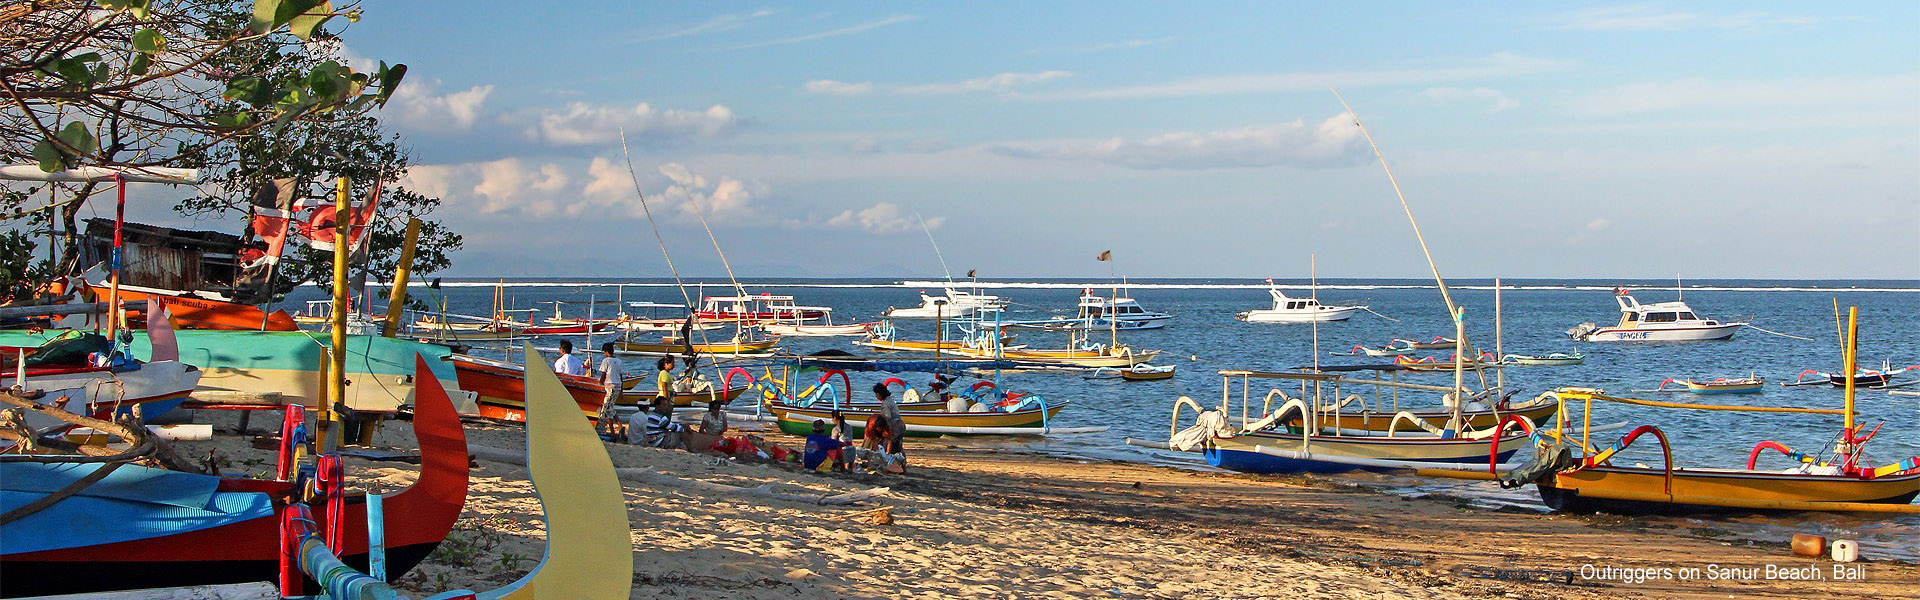 Colourful outriggers on Sanur Beach, Bali